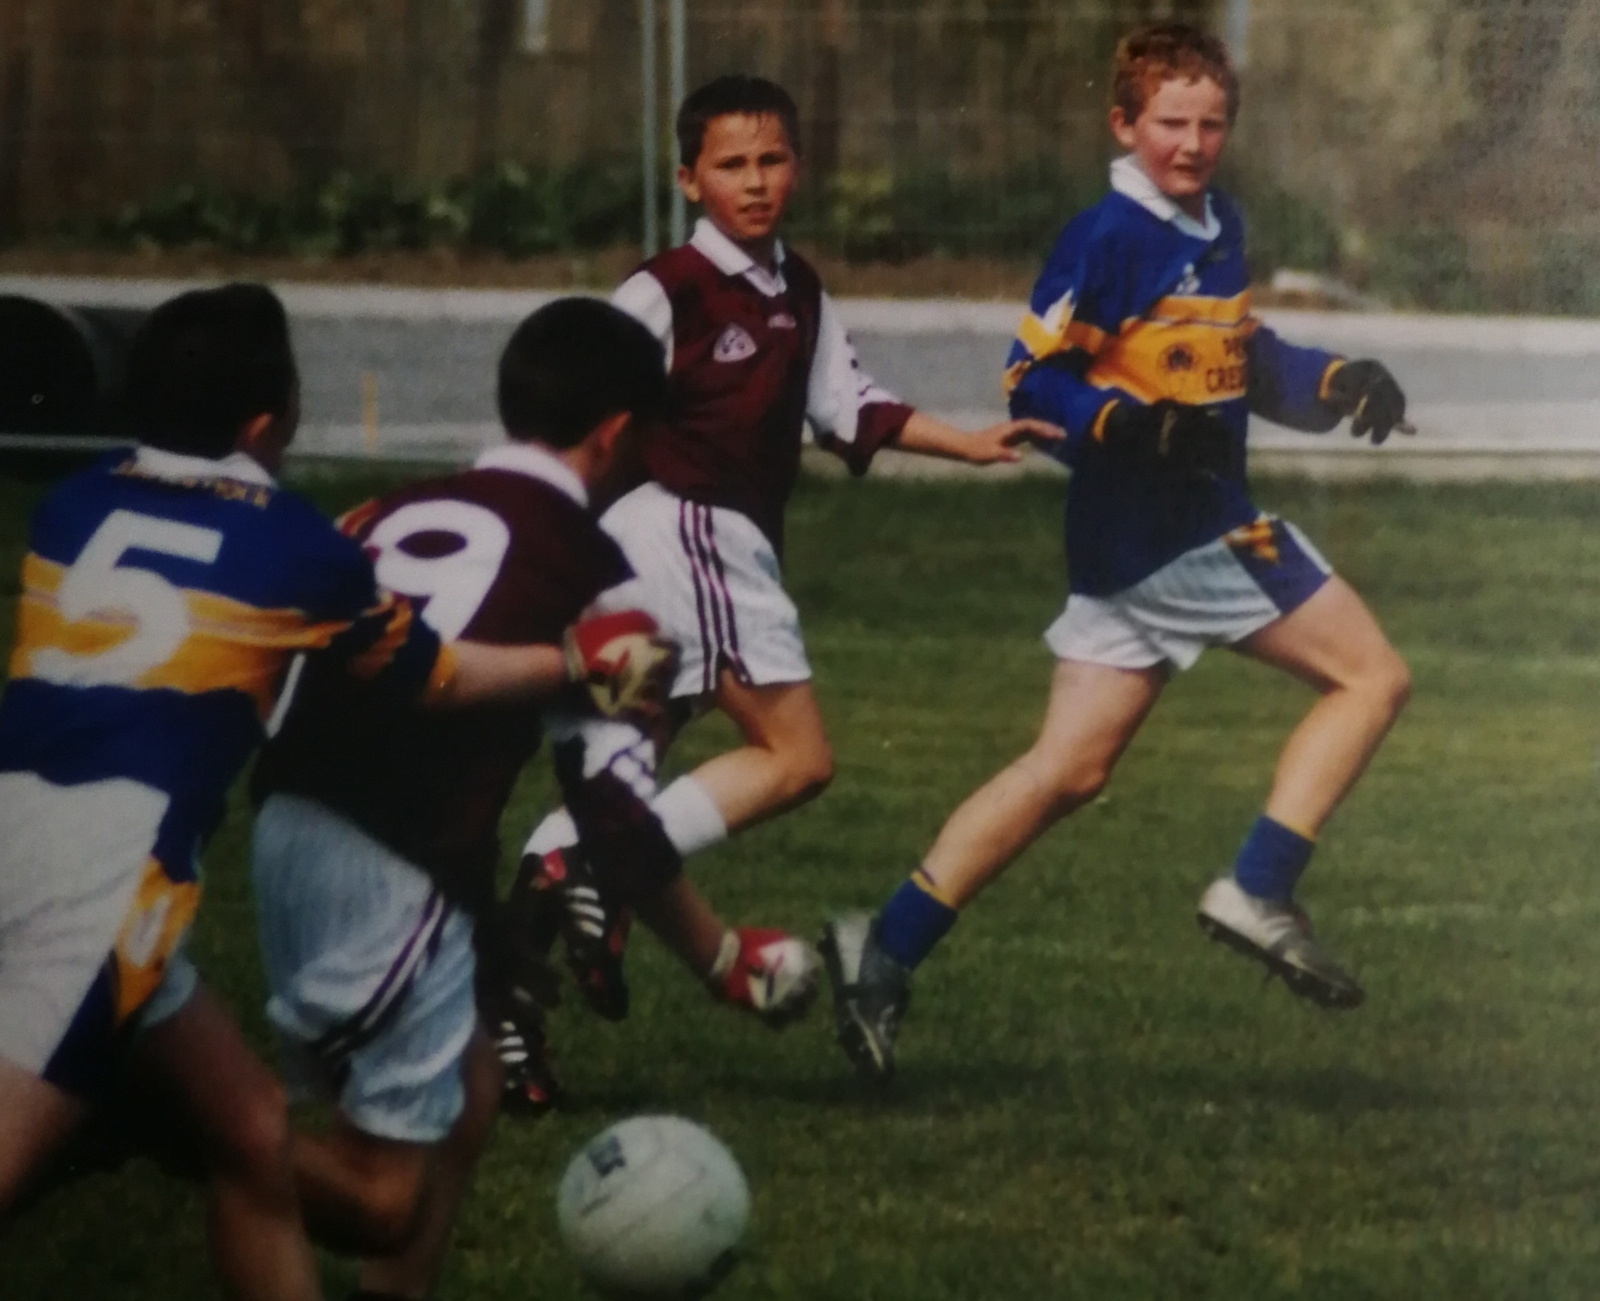 Image - O'Sullivan and Kilkenny square off in club action at U11 level